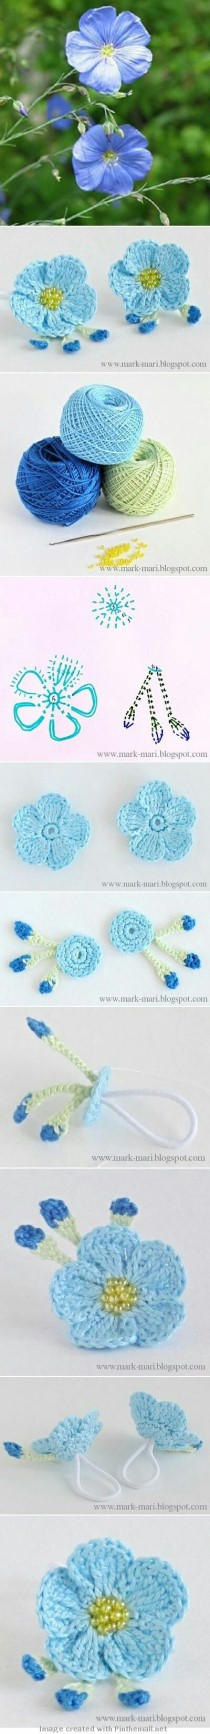 Pin by bahia kaseem on flower pinterest crochet flowers crochet all kinds of pretty flowers with diagrams for hair bands these make pretty flower rings mightylinksfo